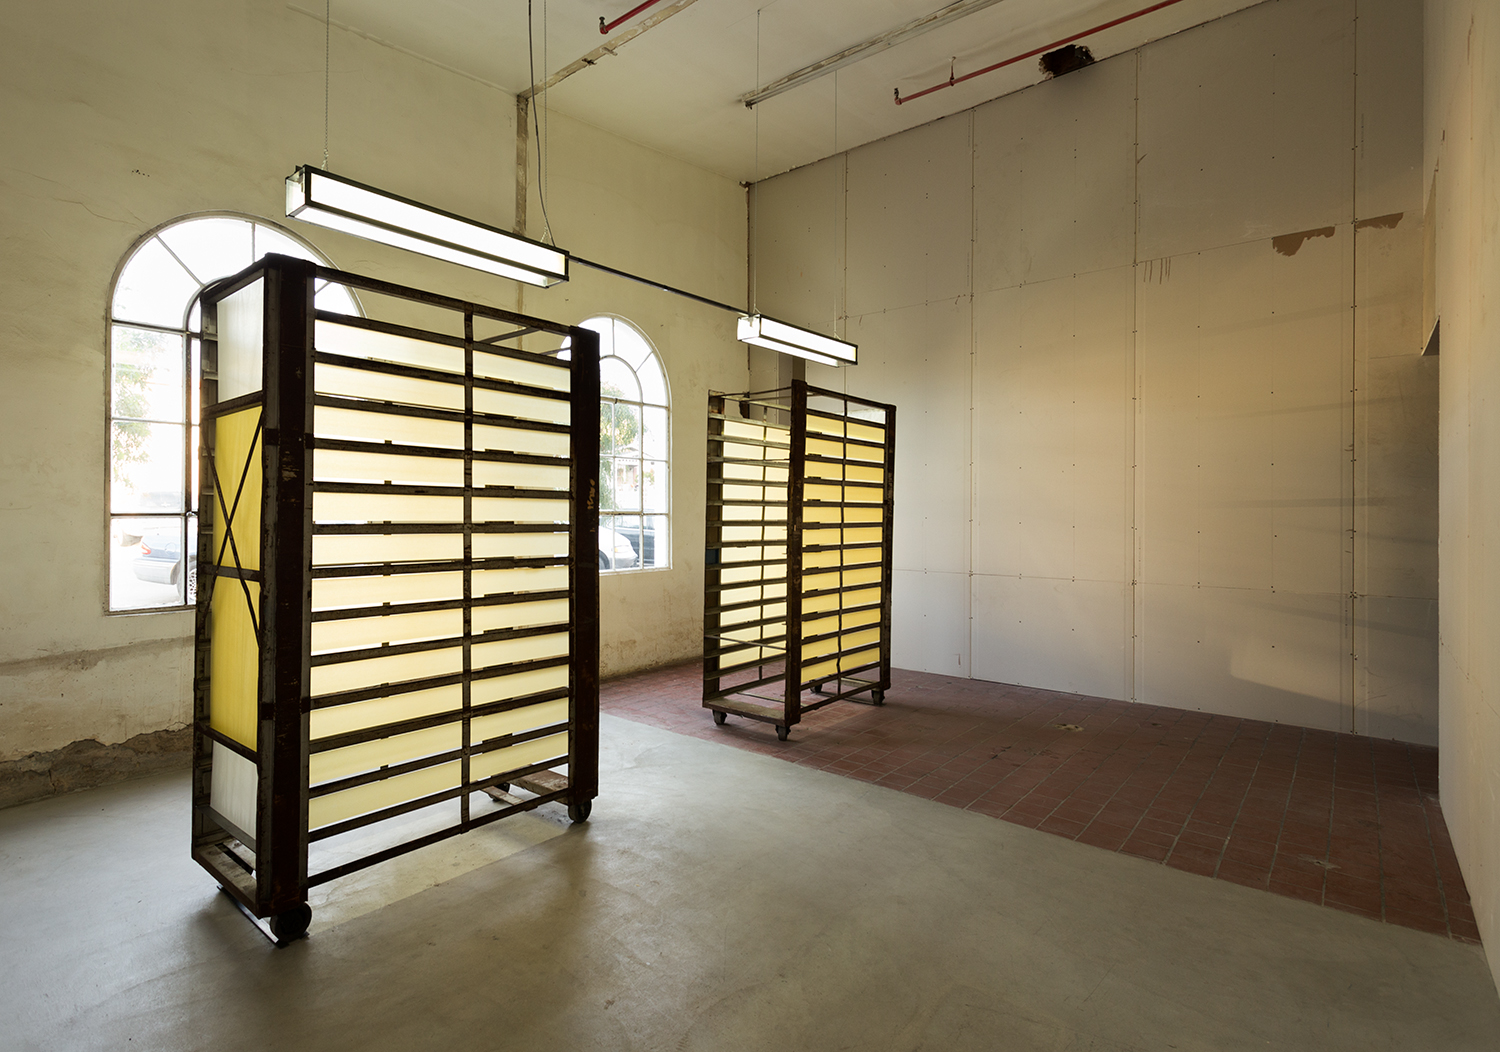 Old steel bread racks, tracing paper, glassine, custom light fixture  2013, ICE Gallery   Photos:  Philipp Scholz Rittermann